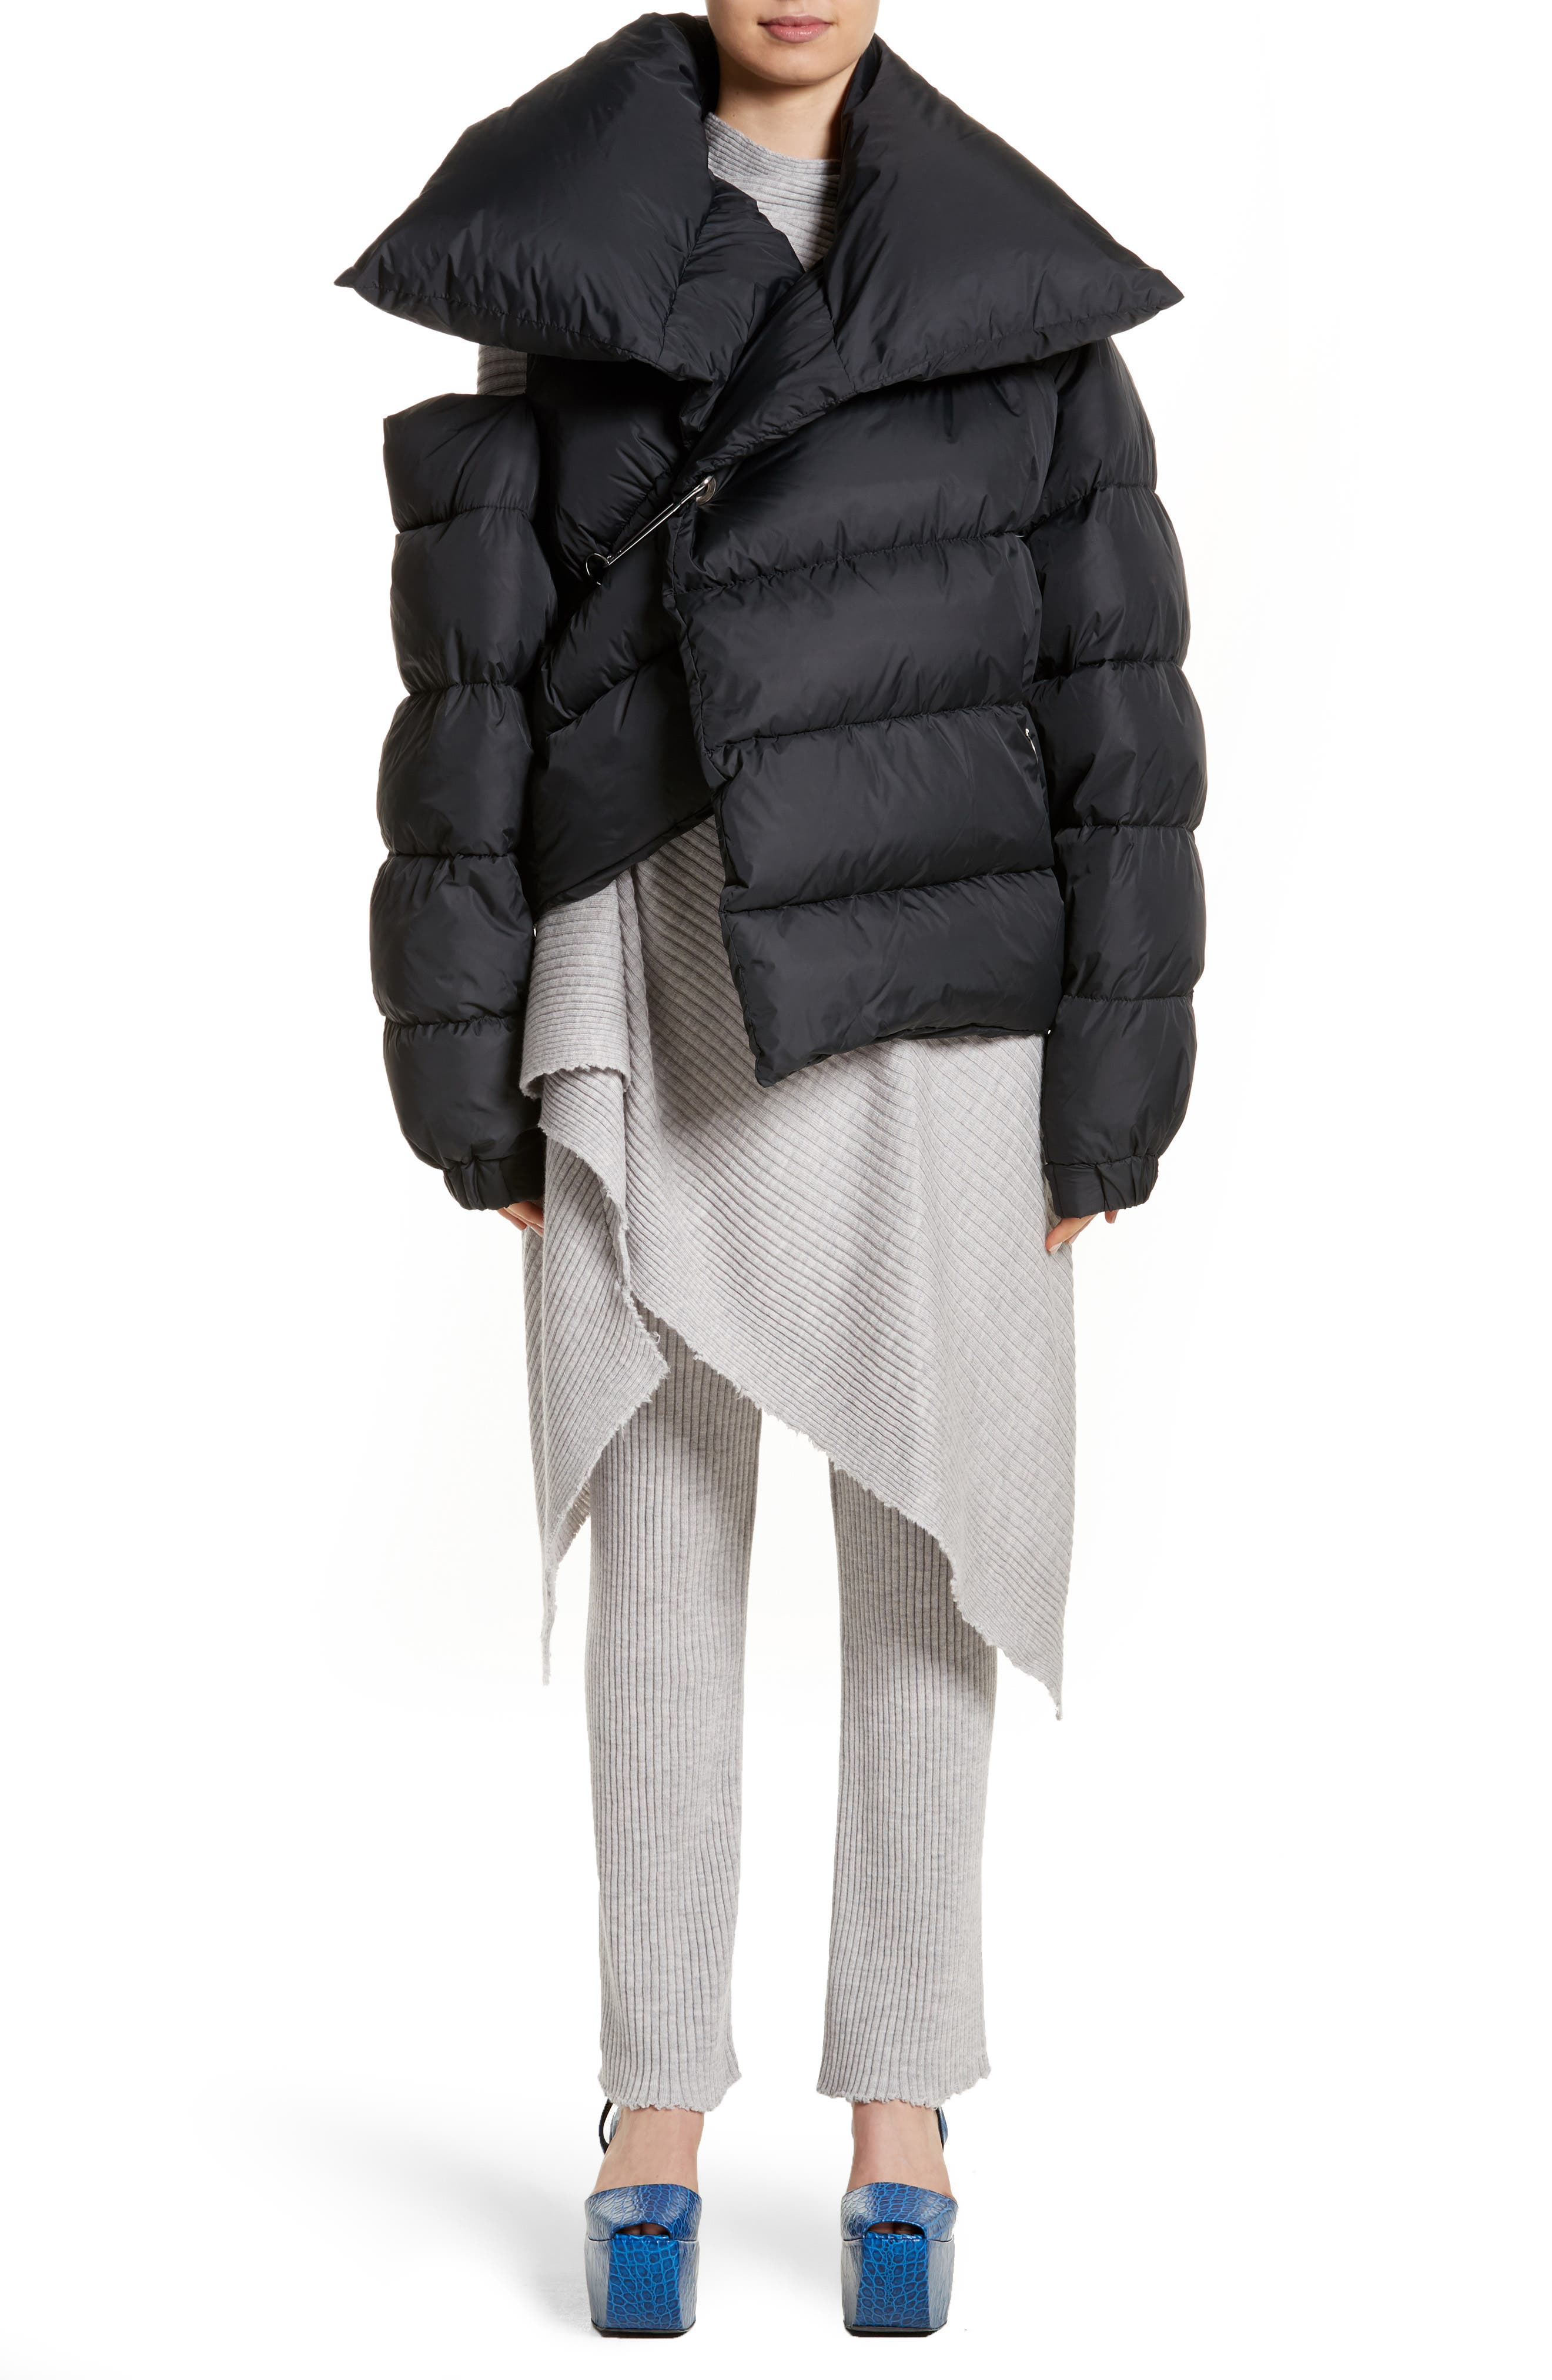 Marques'Almeida Asymmetrical Down Puffer Coat with Safety Pin Closure,                         Main,                         color, 001